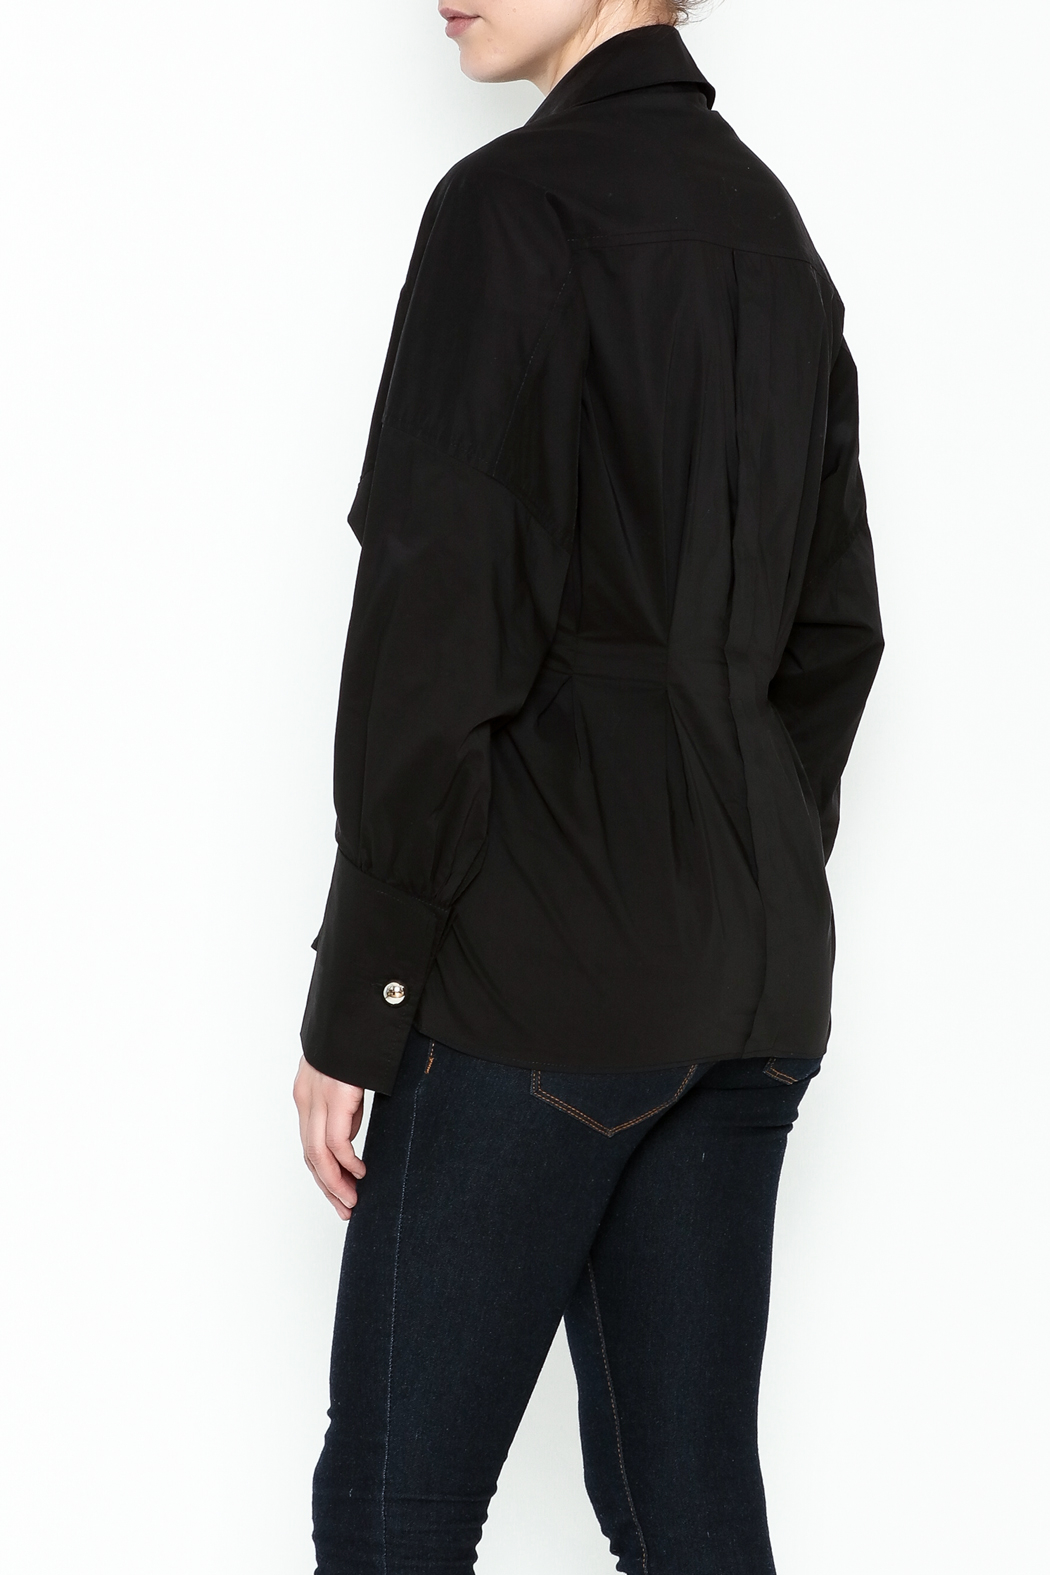 Ina Belted Ring Blouse - Back Cropped Image